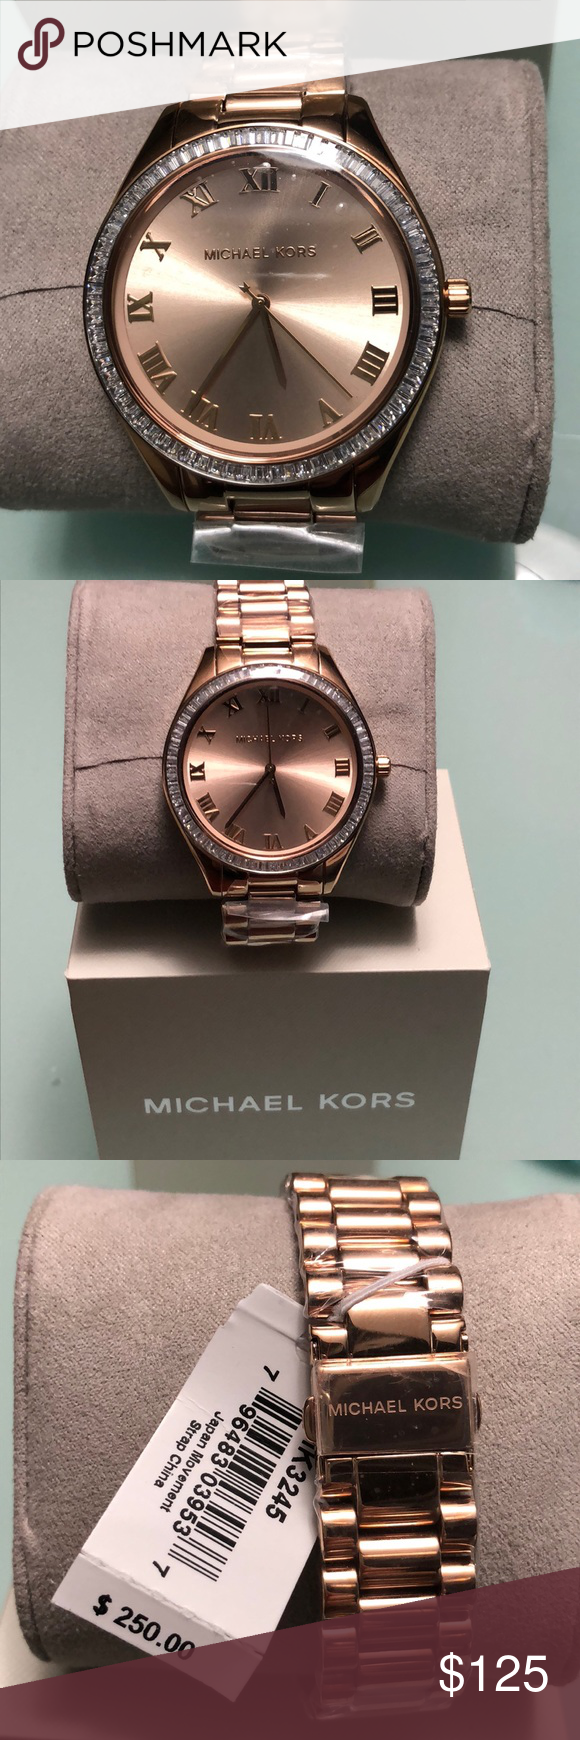 a1b5285ffdbe New Authentic Michael kors Rose gold watch MK3245 Michael kors Rose tone  Blake Glitz dial watch Mk 3245 a trapezia stone to ring complements the  oversized ...